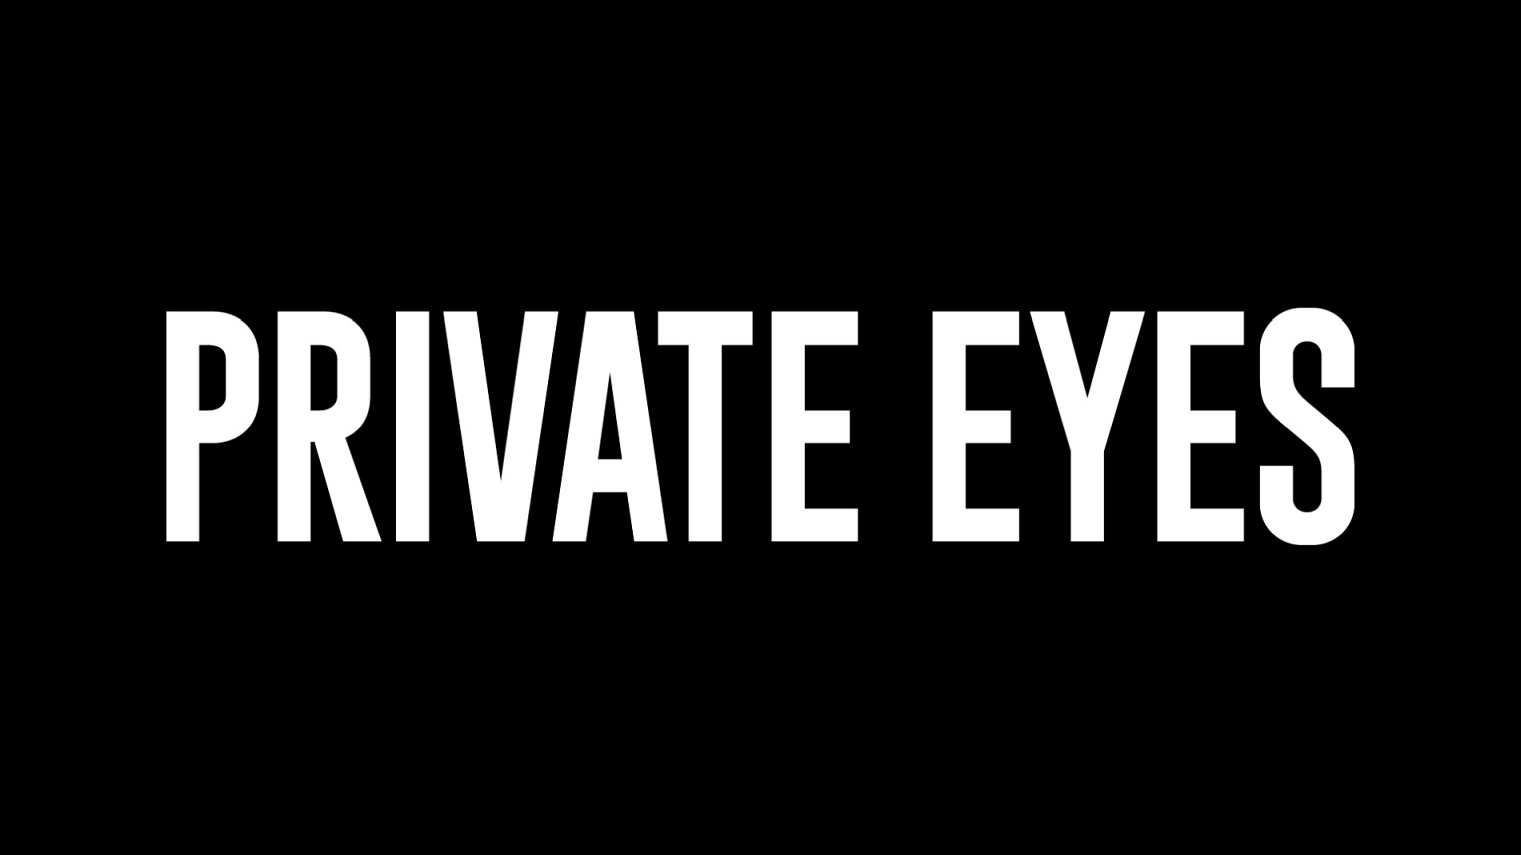 what time does Private Eyes come on